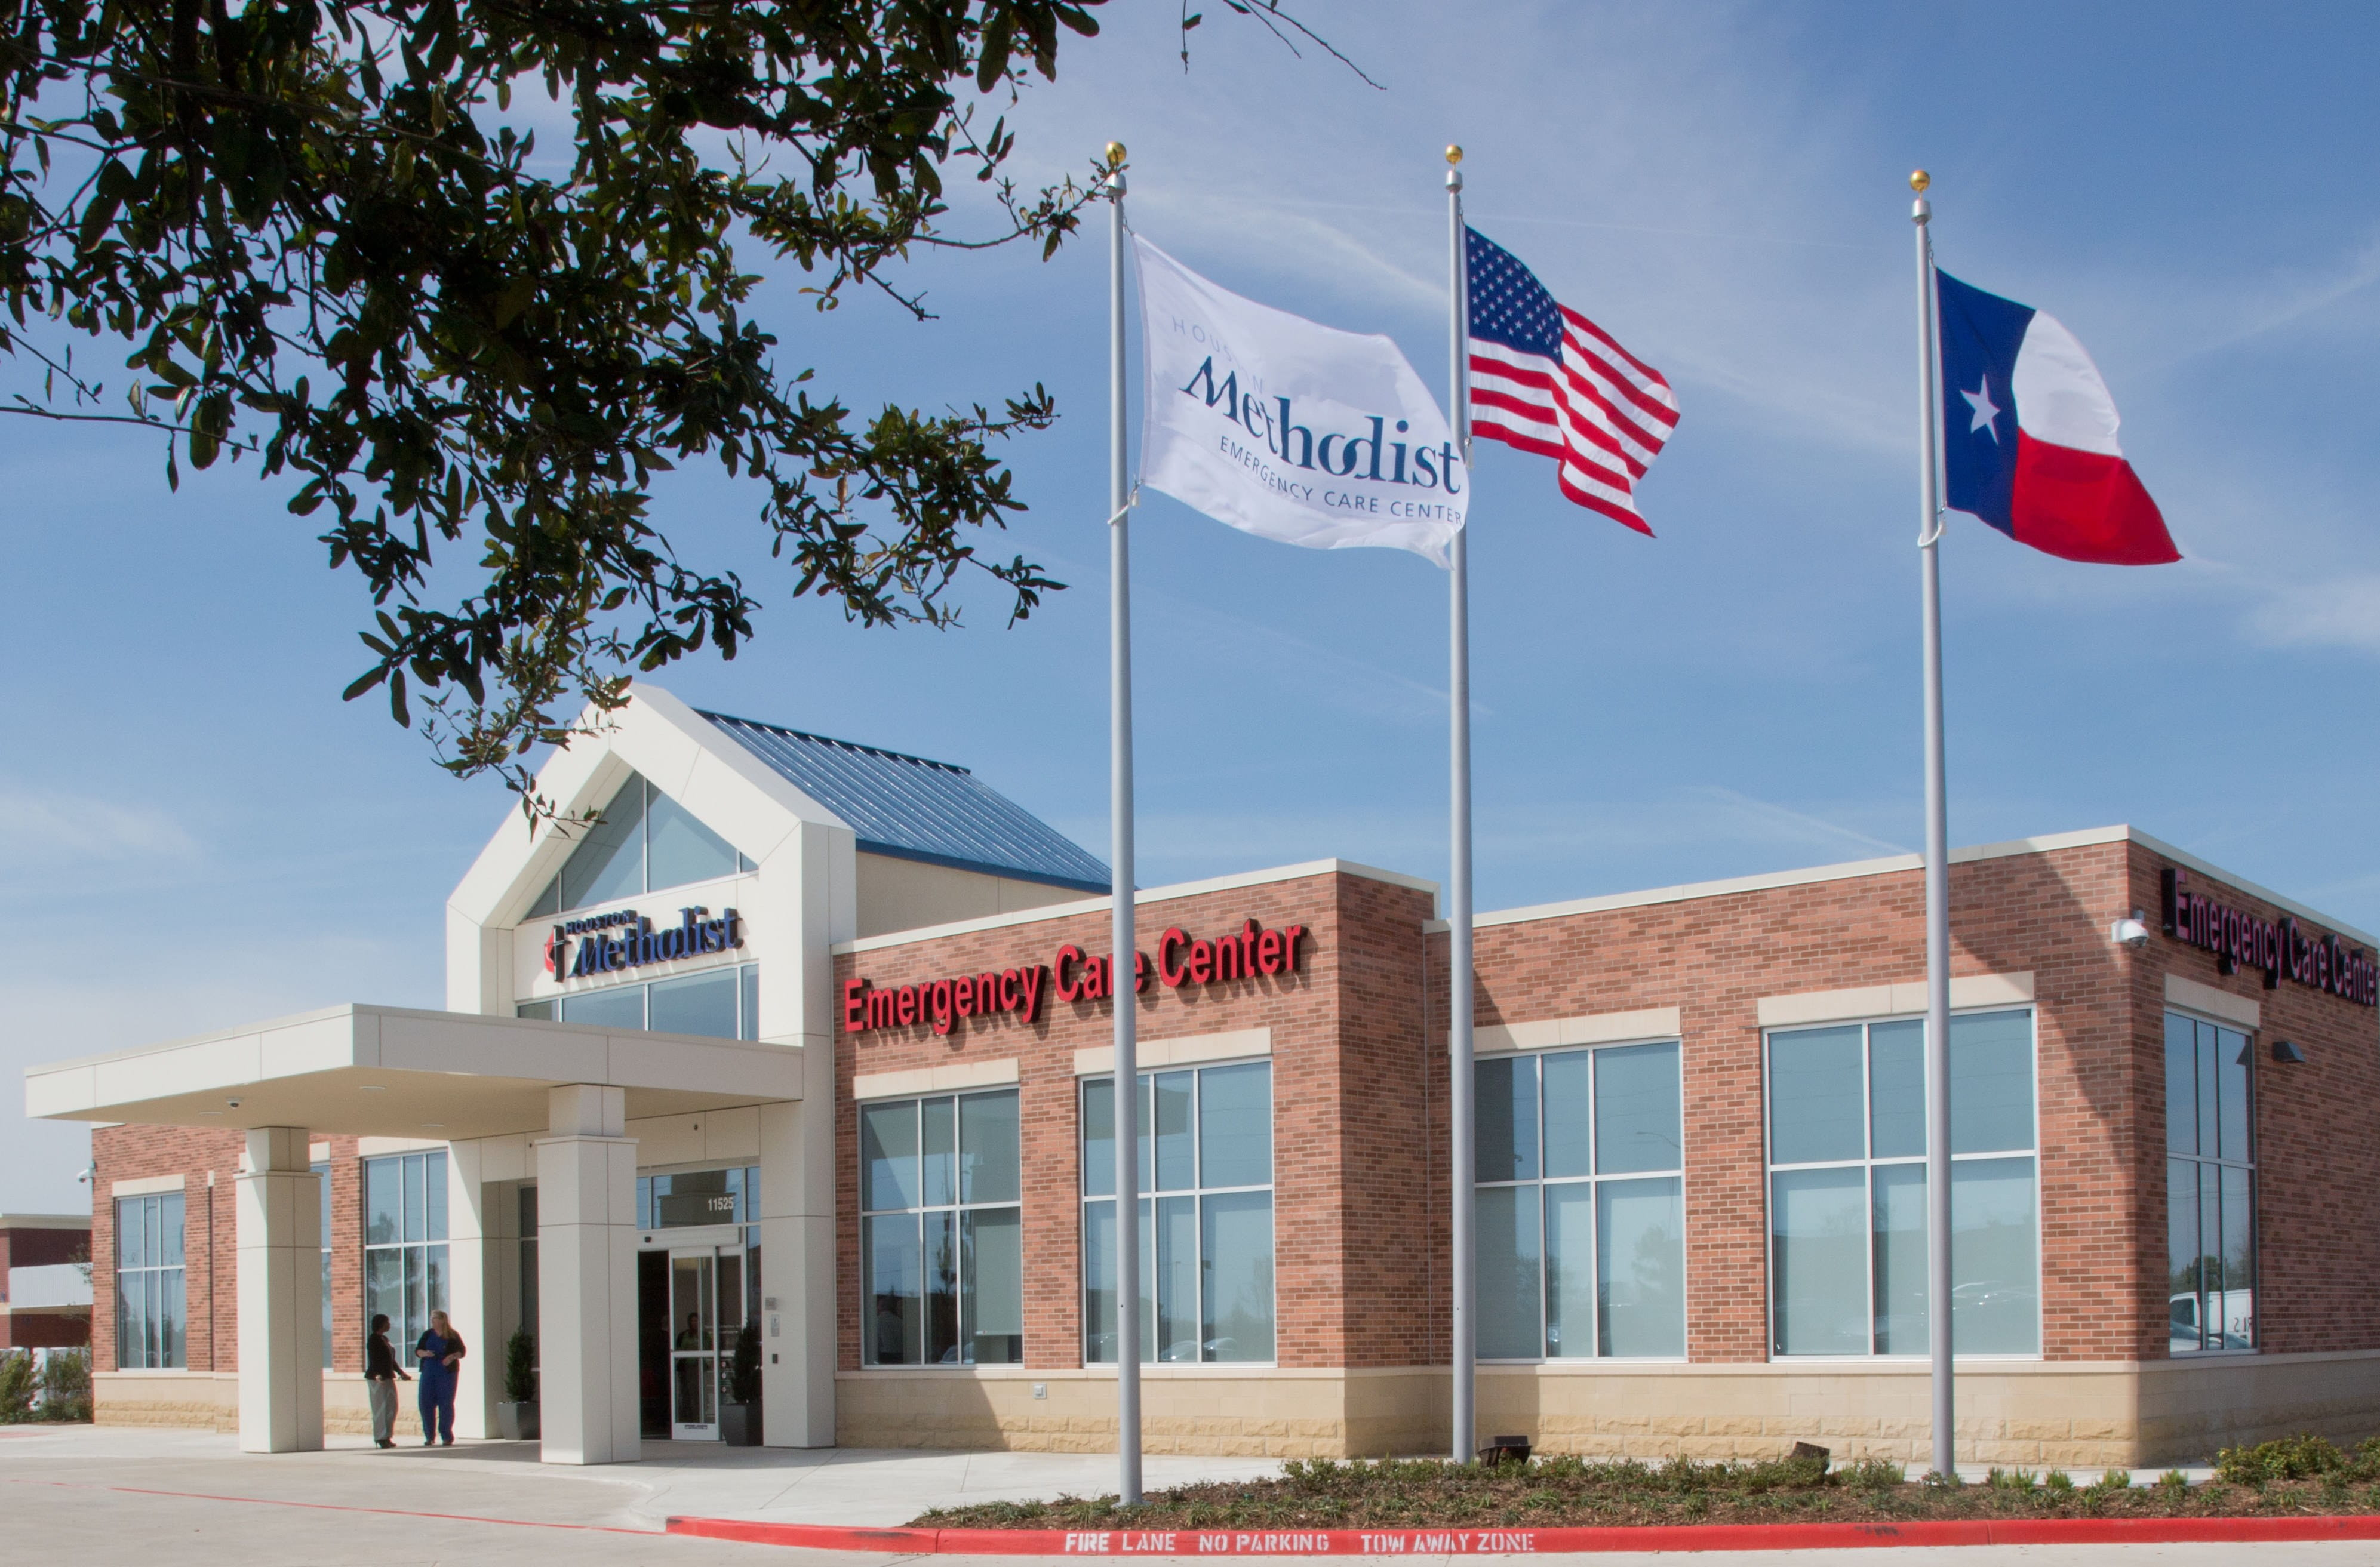 Pearland Emergency Care Center